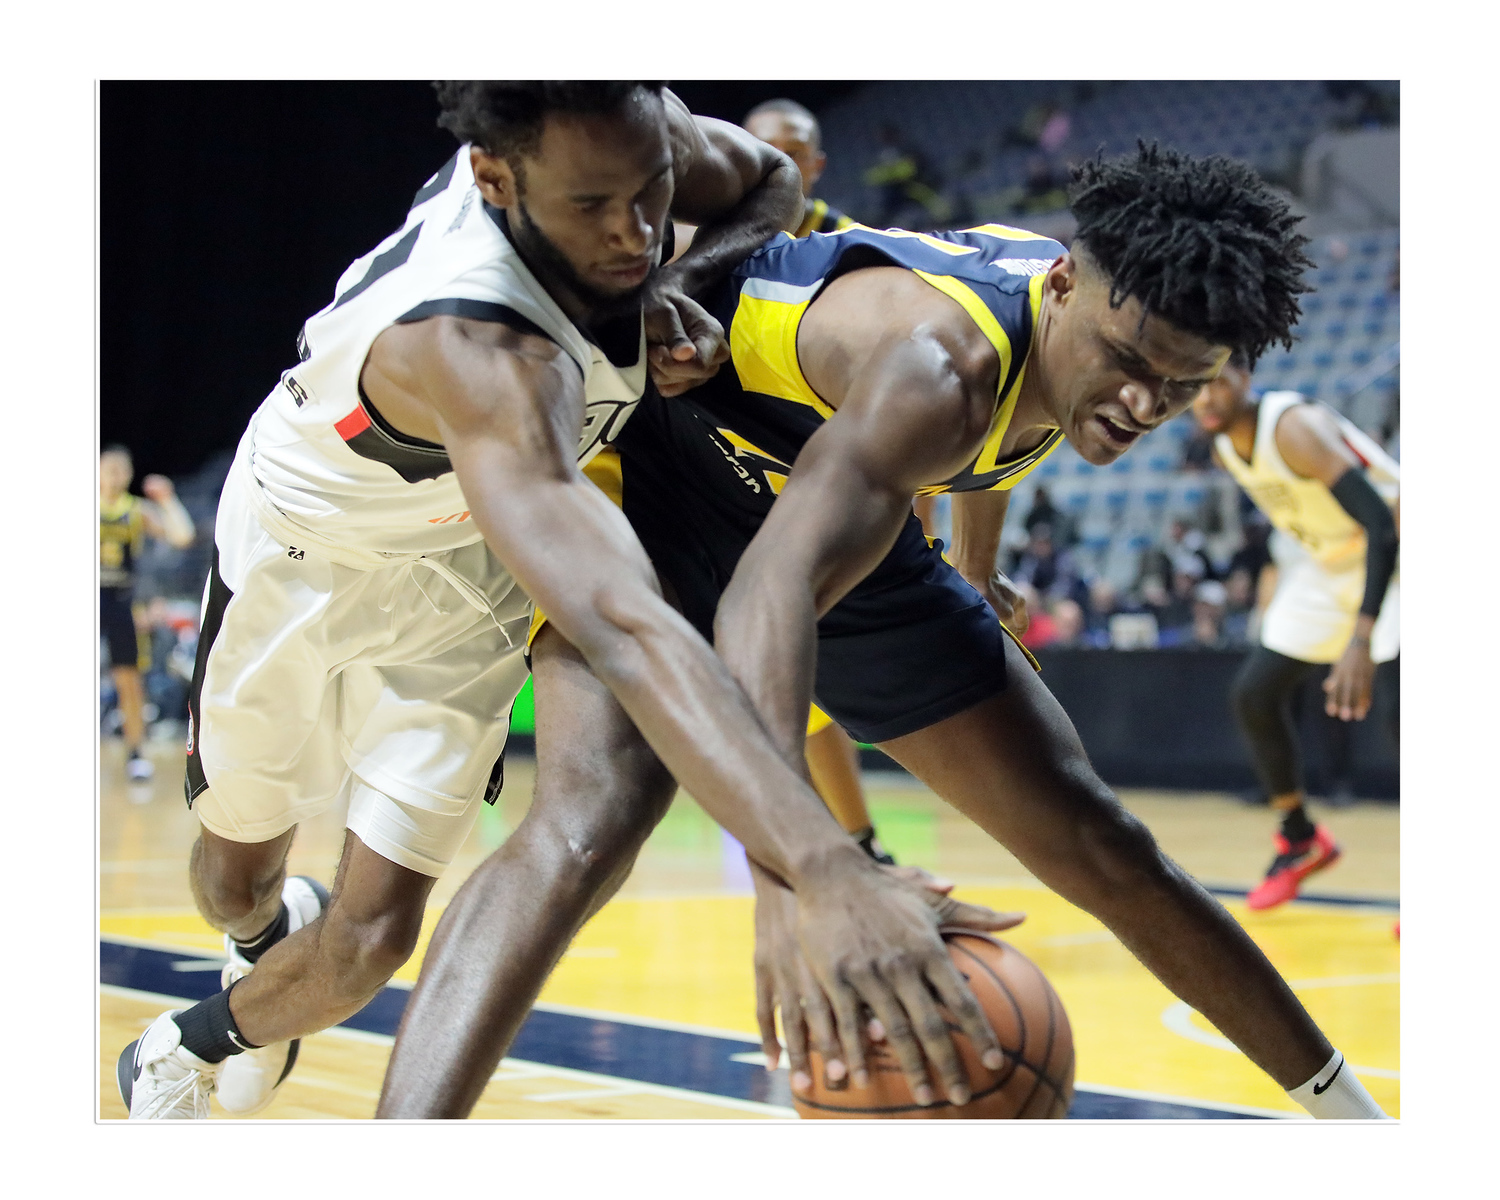 IMAGE: https://photos.smugmug.com/Sports-Events/Mad-Ants-Current-Season/Nov-29-2018/i-Vhwnmz3/0/4fce0a27/X3/FX8A3831a-X3.jpg